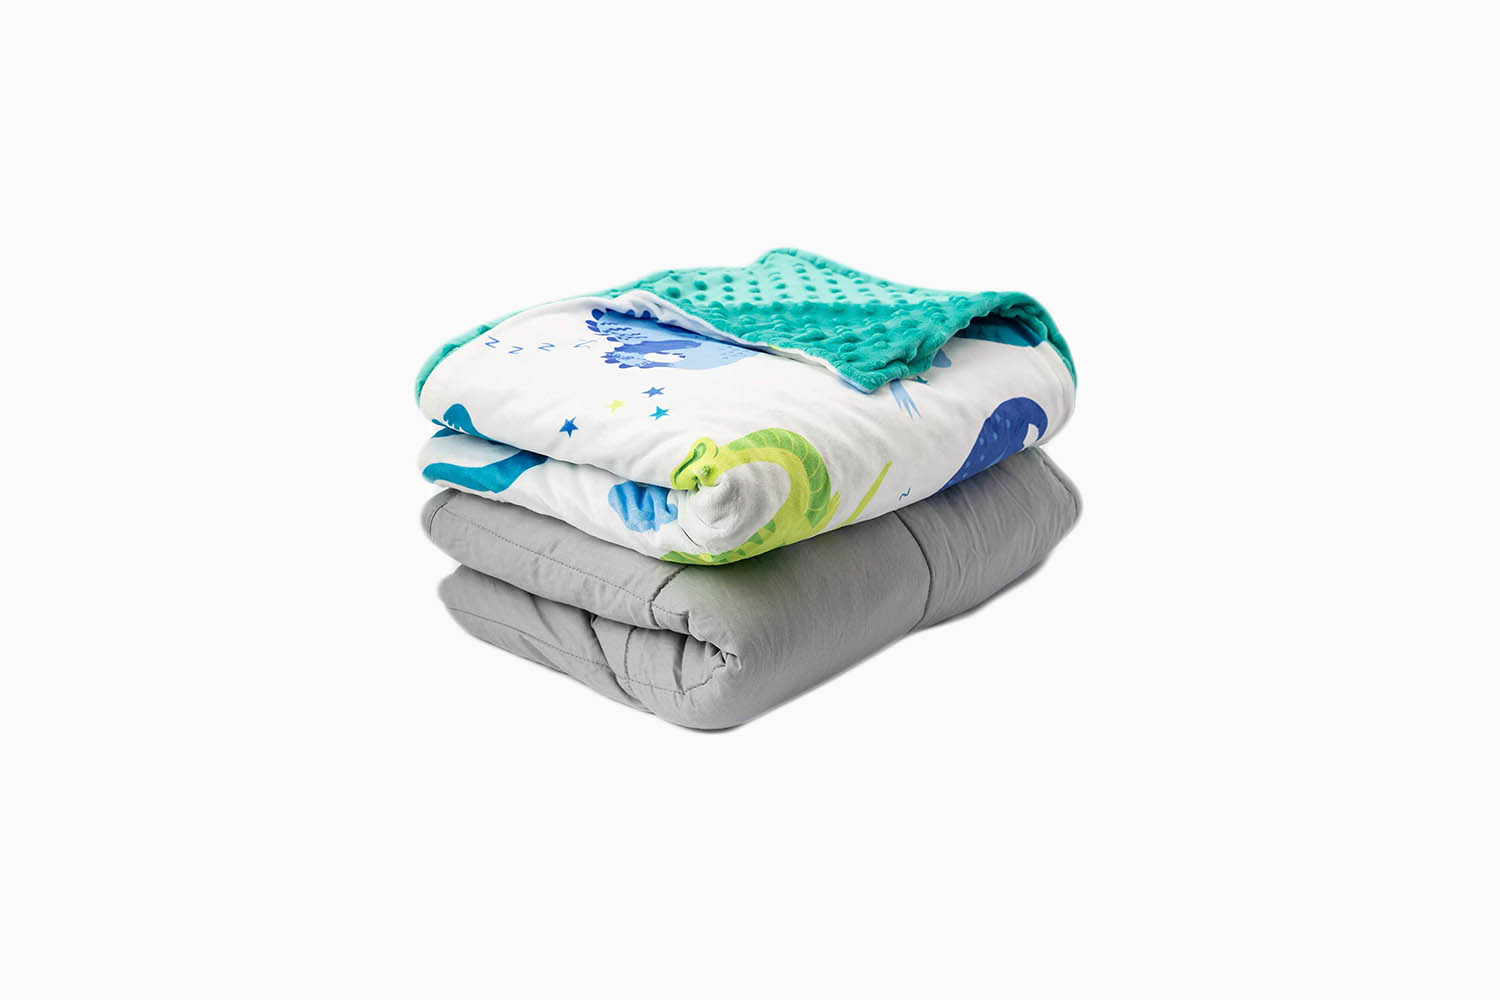 Best Weighted Blankets Sweetzer And Orange Review - Luxe Digital